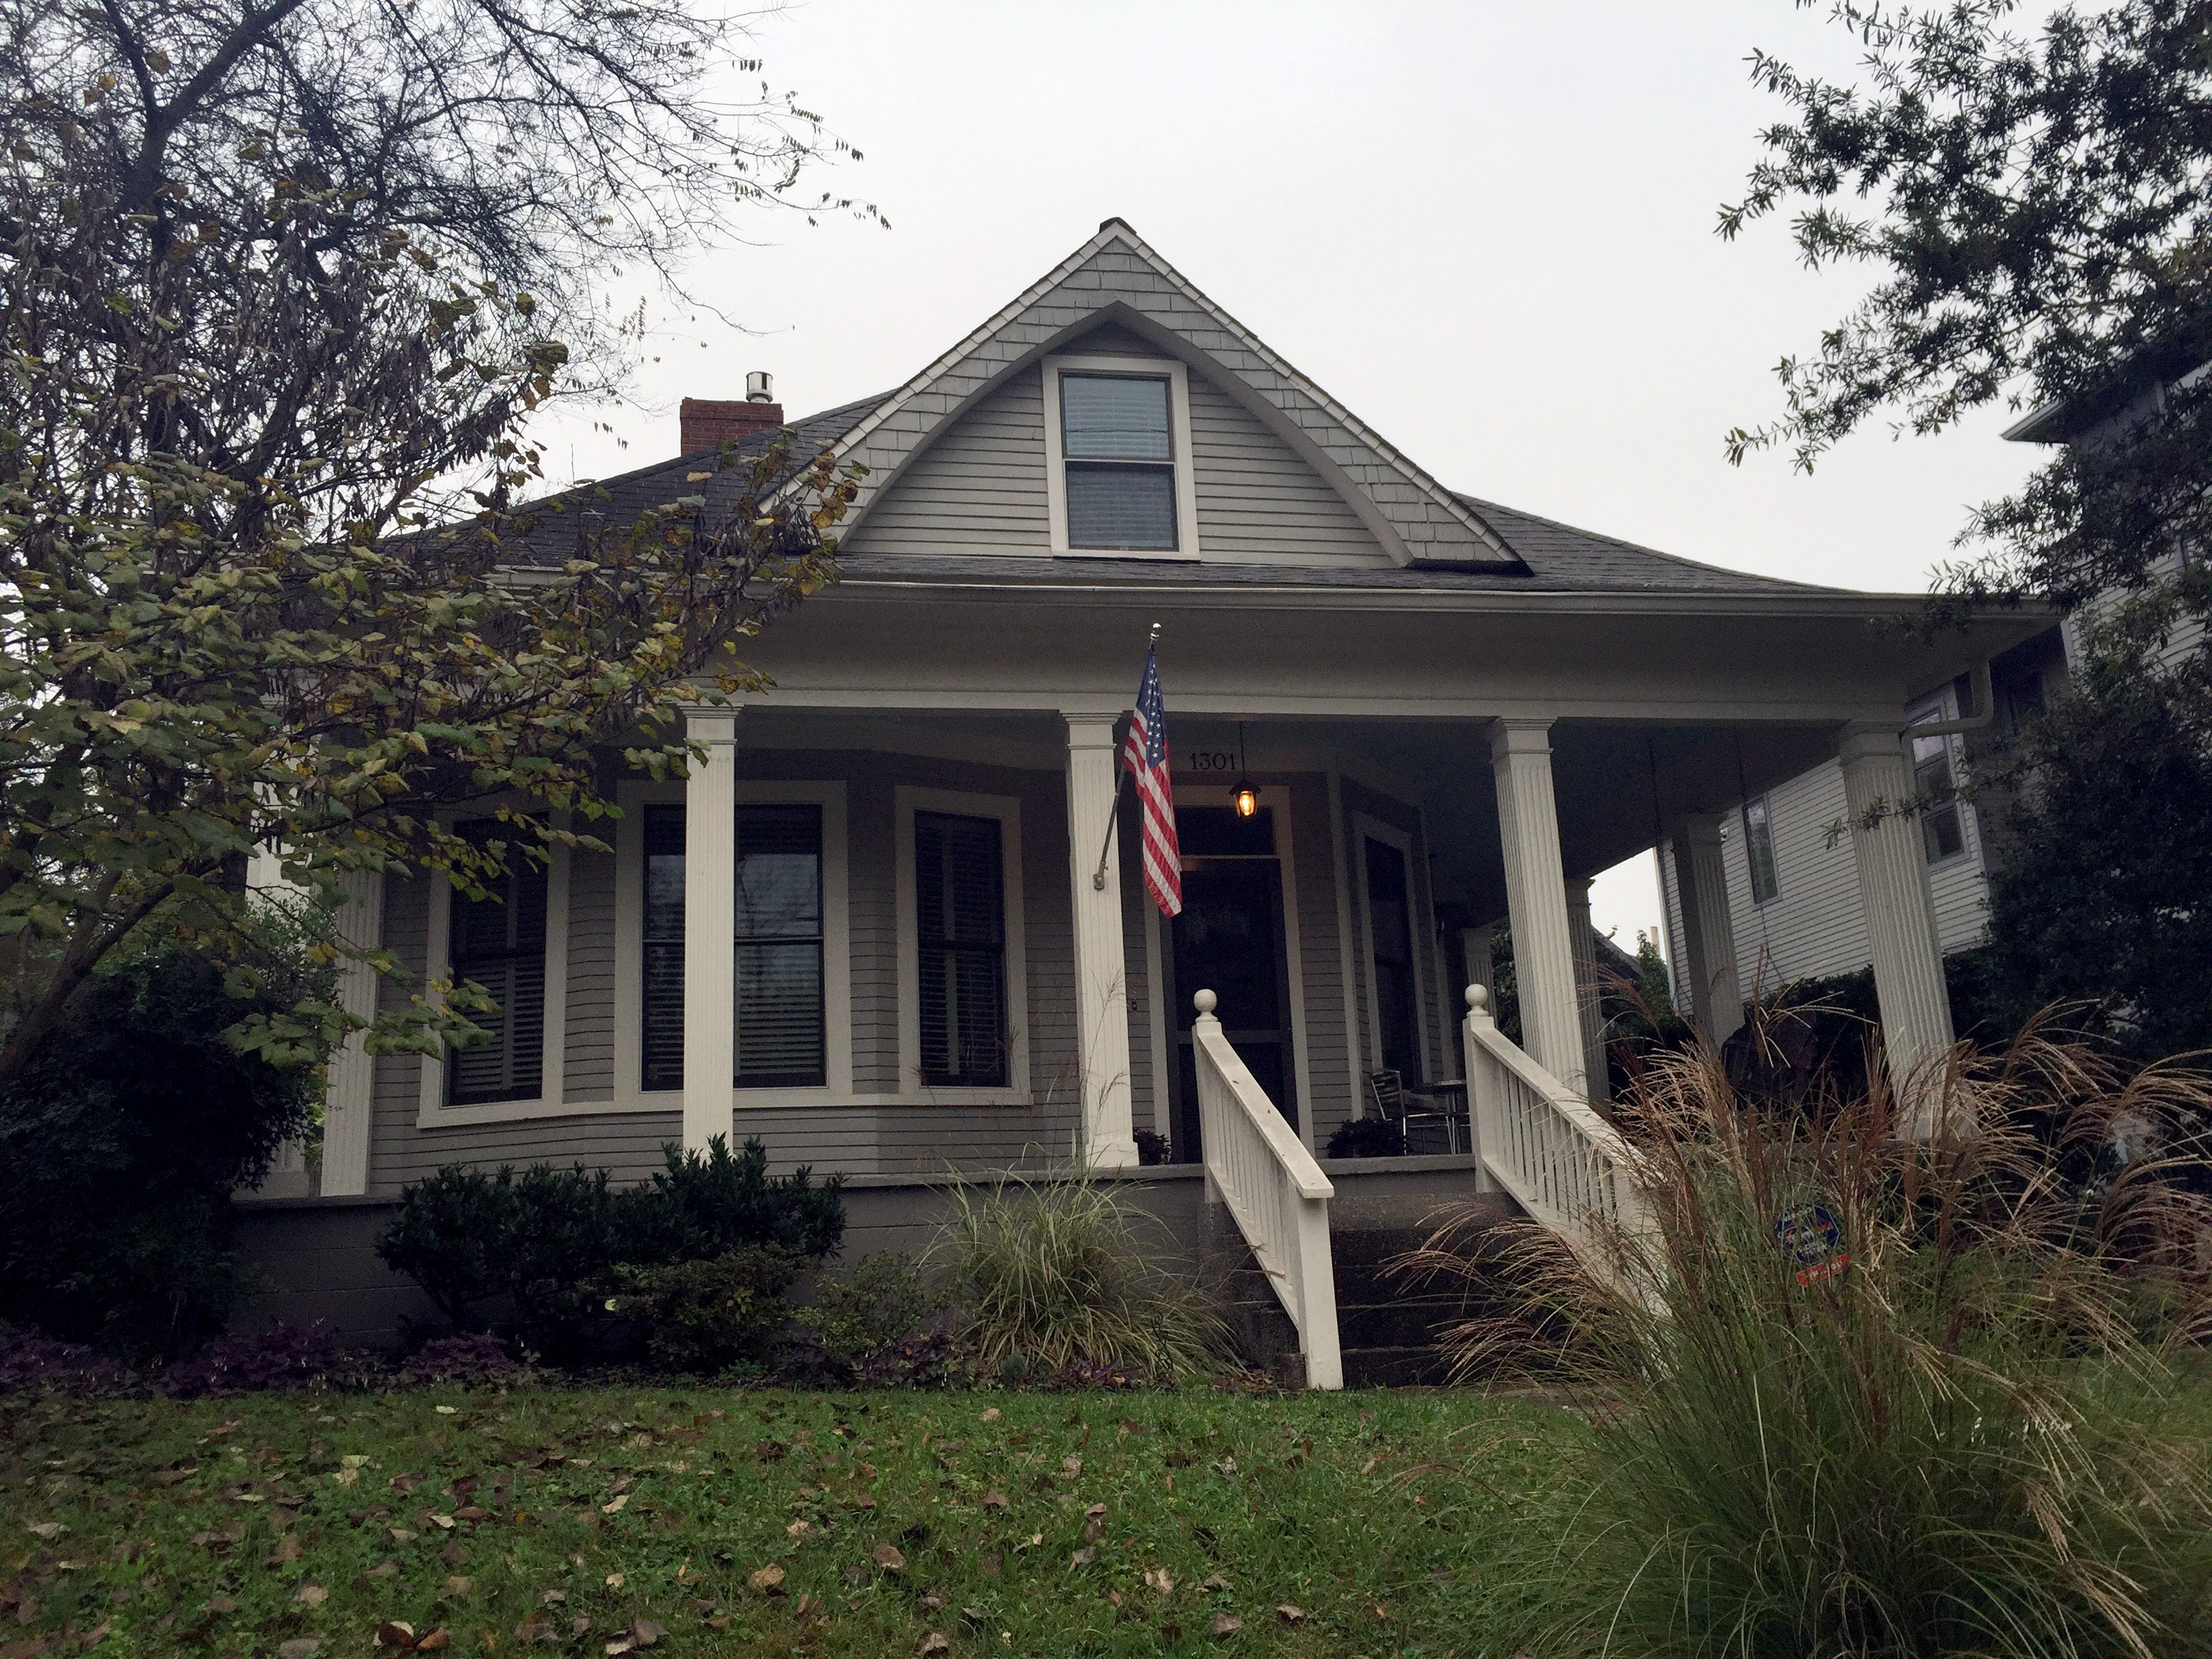 Homes of the 2015 Tour Lockeland Springs Neighborhood Association